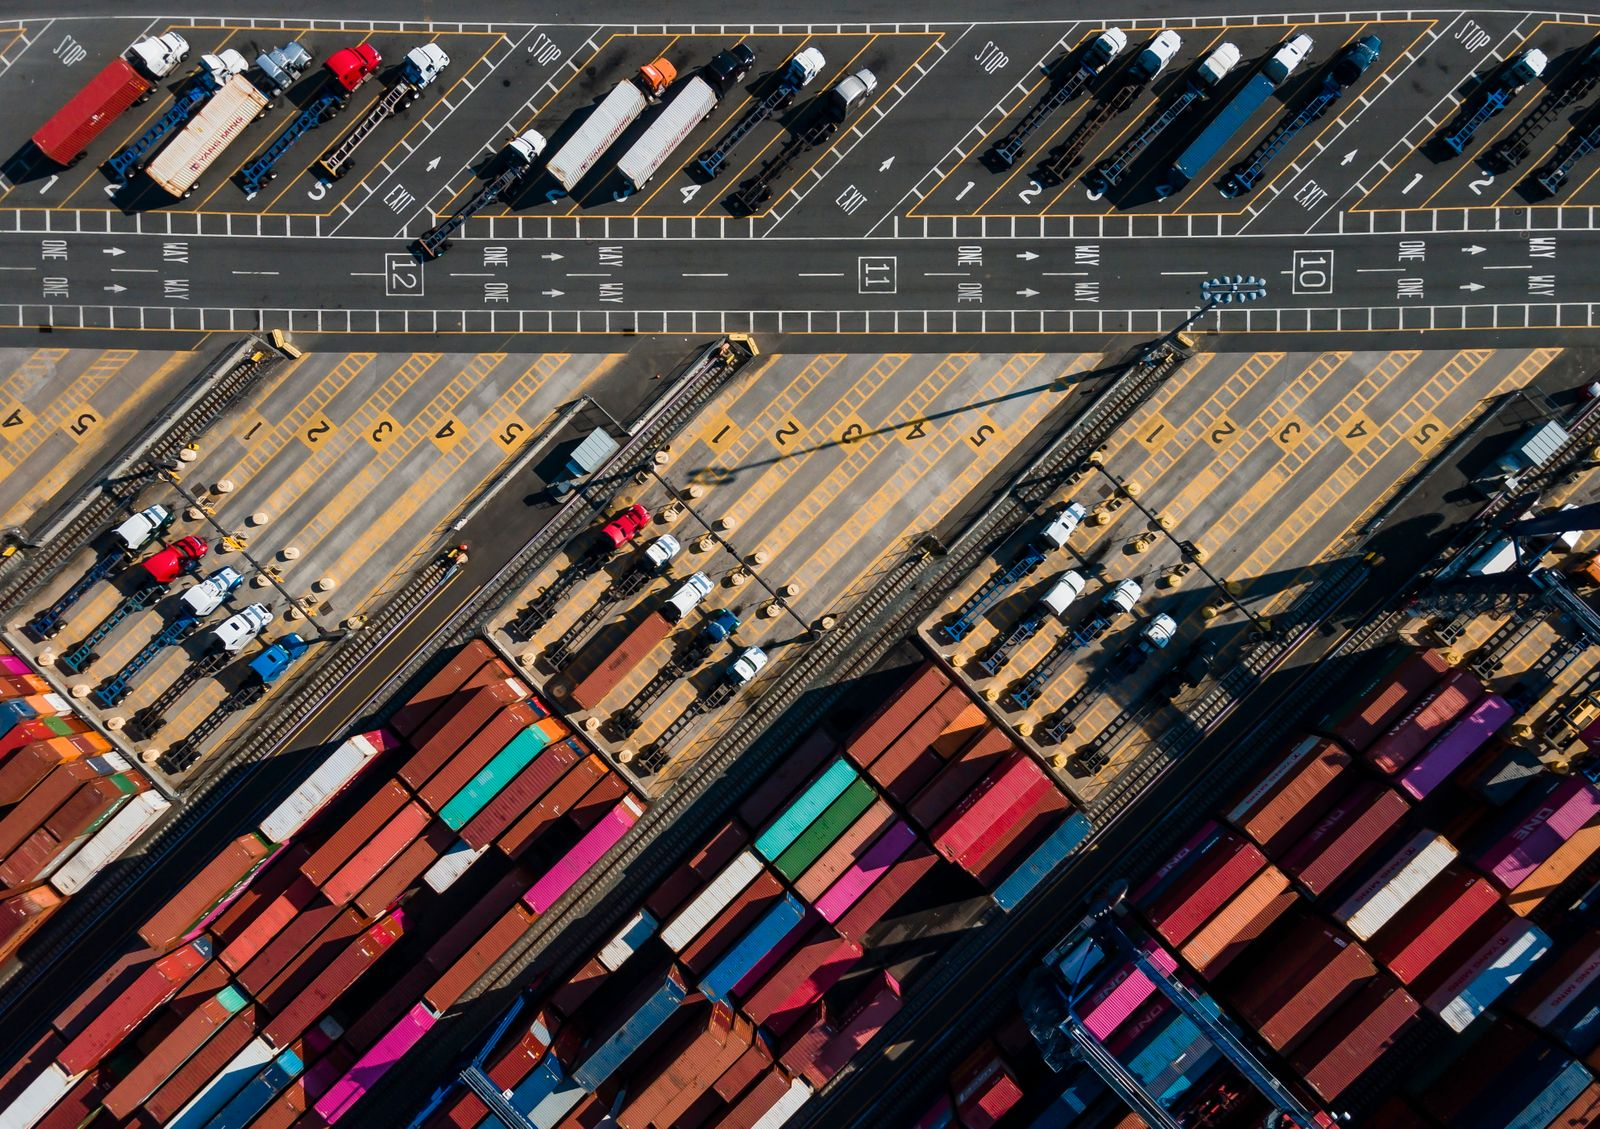 Global Supply Chain, Shipping Containers at Port of New York and New Jersey